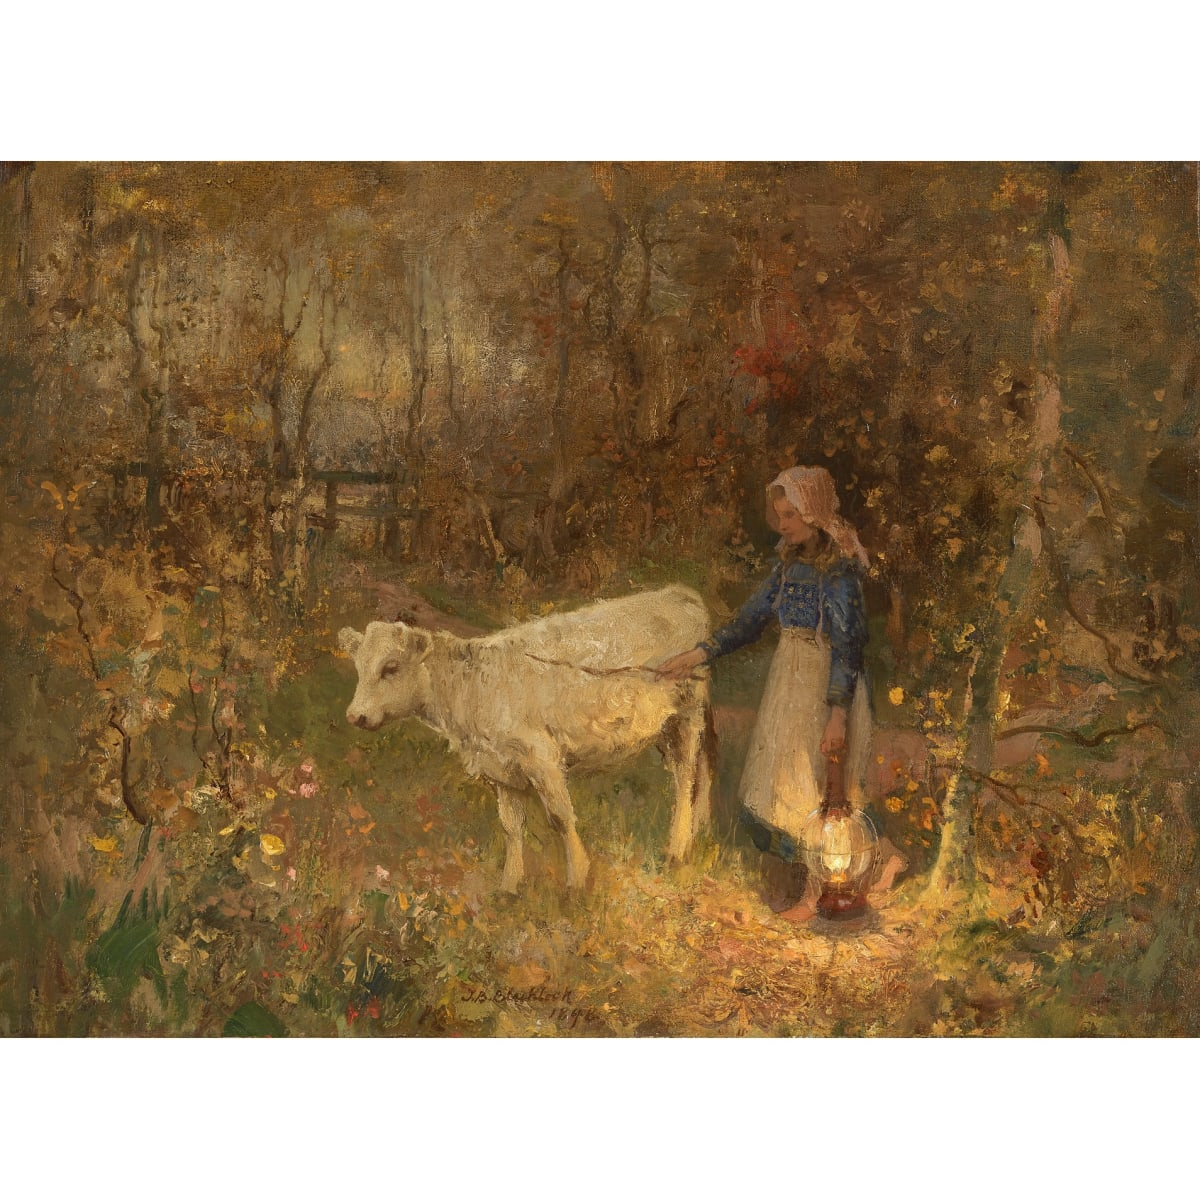 Thomas Bromley Blacklock The Stray Calf, 1896 signed and dated 1896 oil on canvas 16 1/2 x 22 1/4 inches